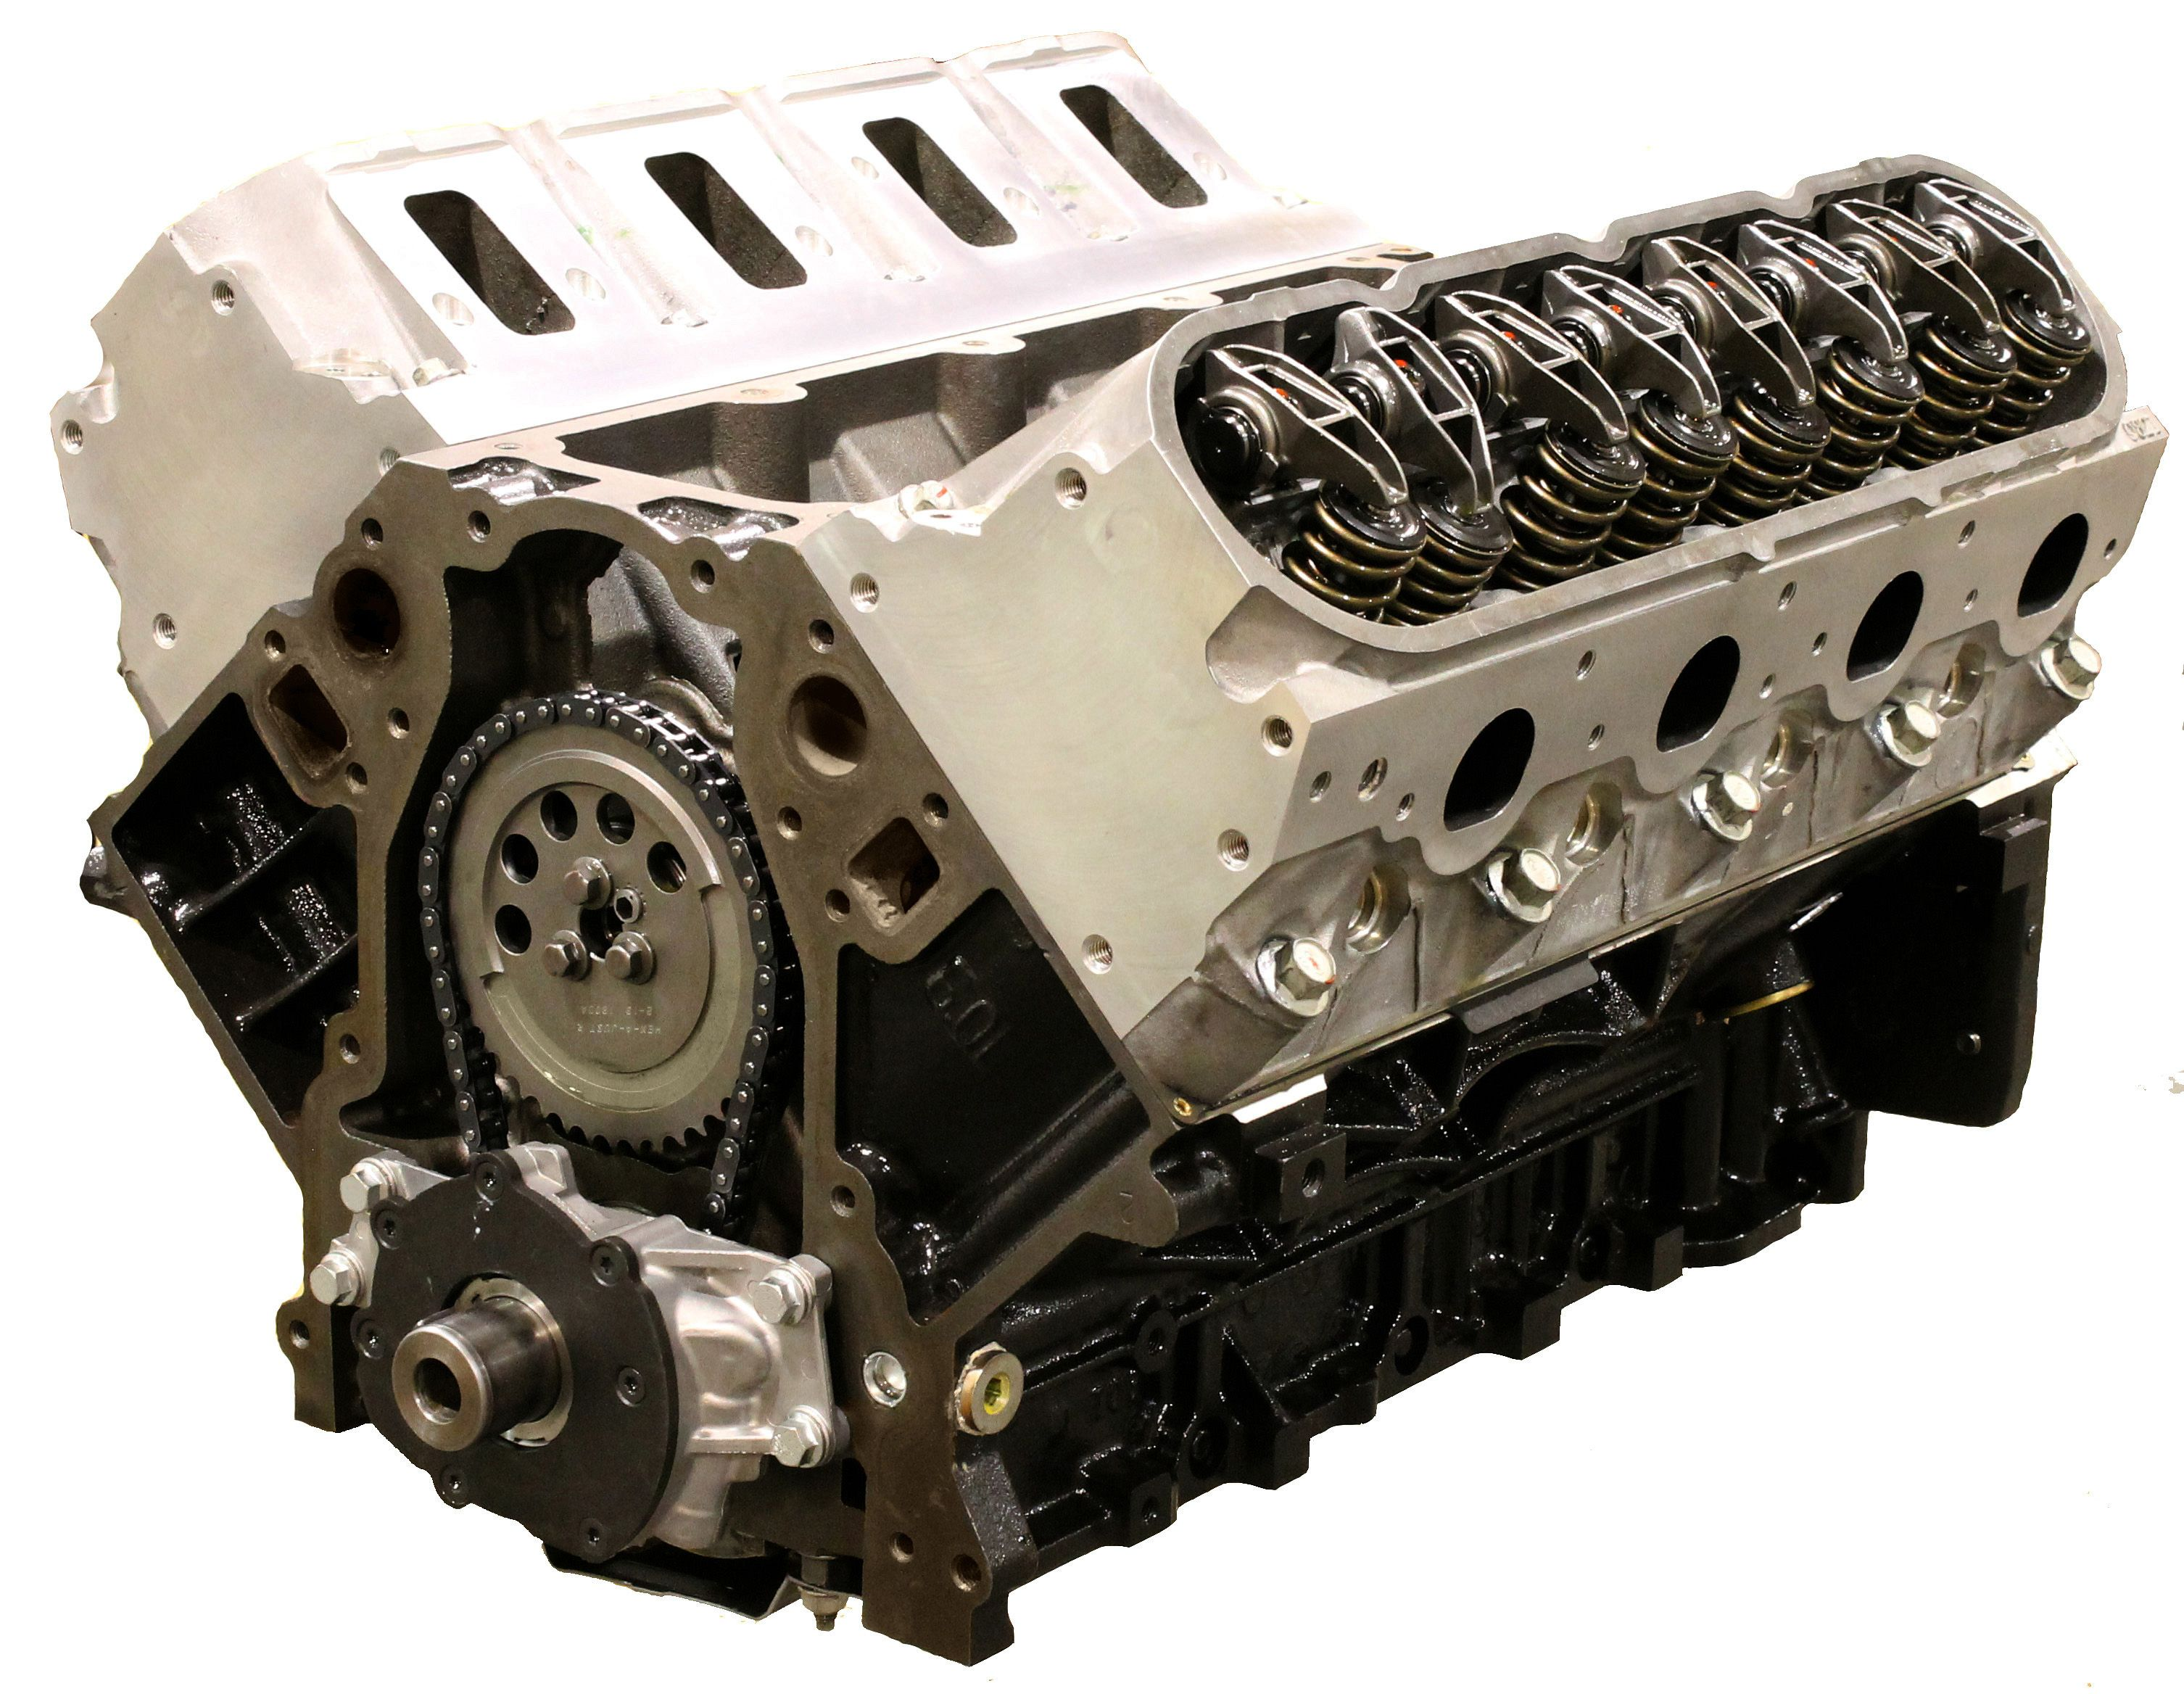 Blueprint engines bpls4080c crate engine blueprintengines 408ci stroker crate engine gm ls style dressed longblock with fuel injection aluminum heads roller cam malvernweather Image collections